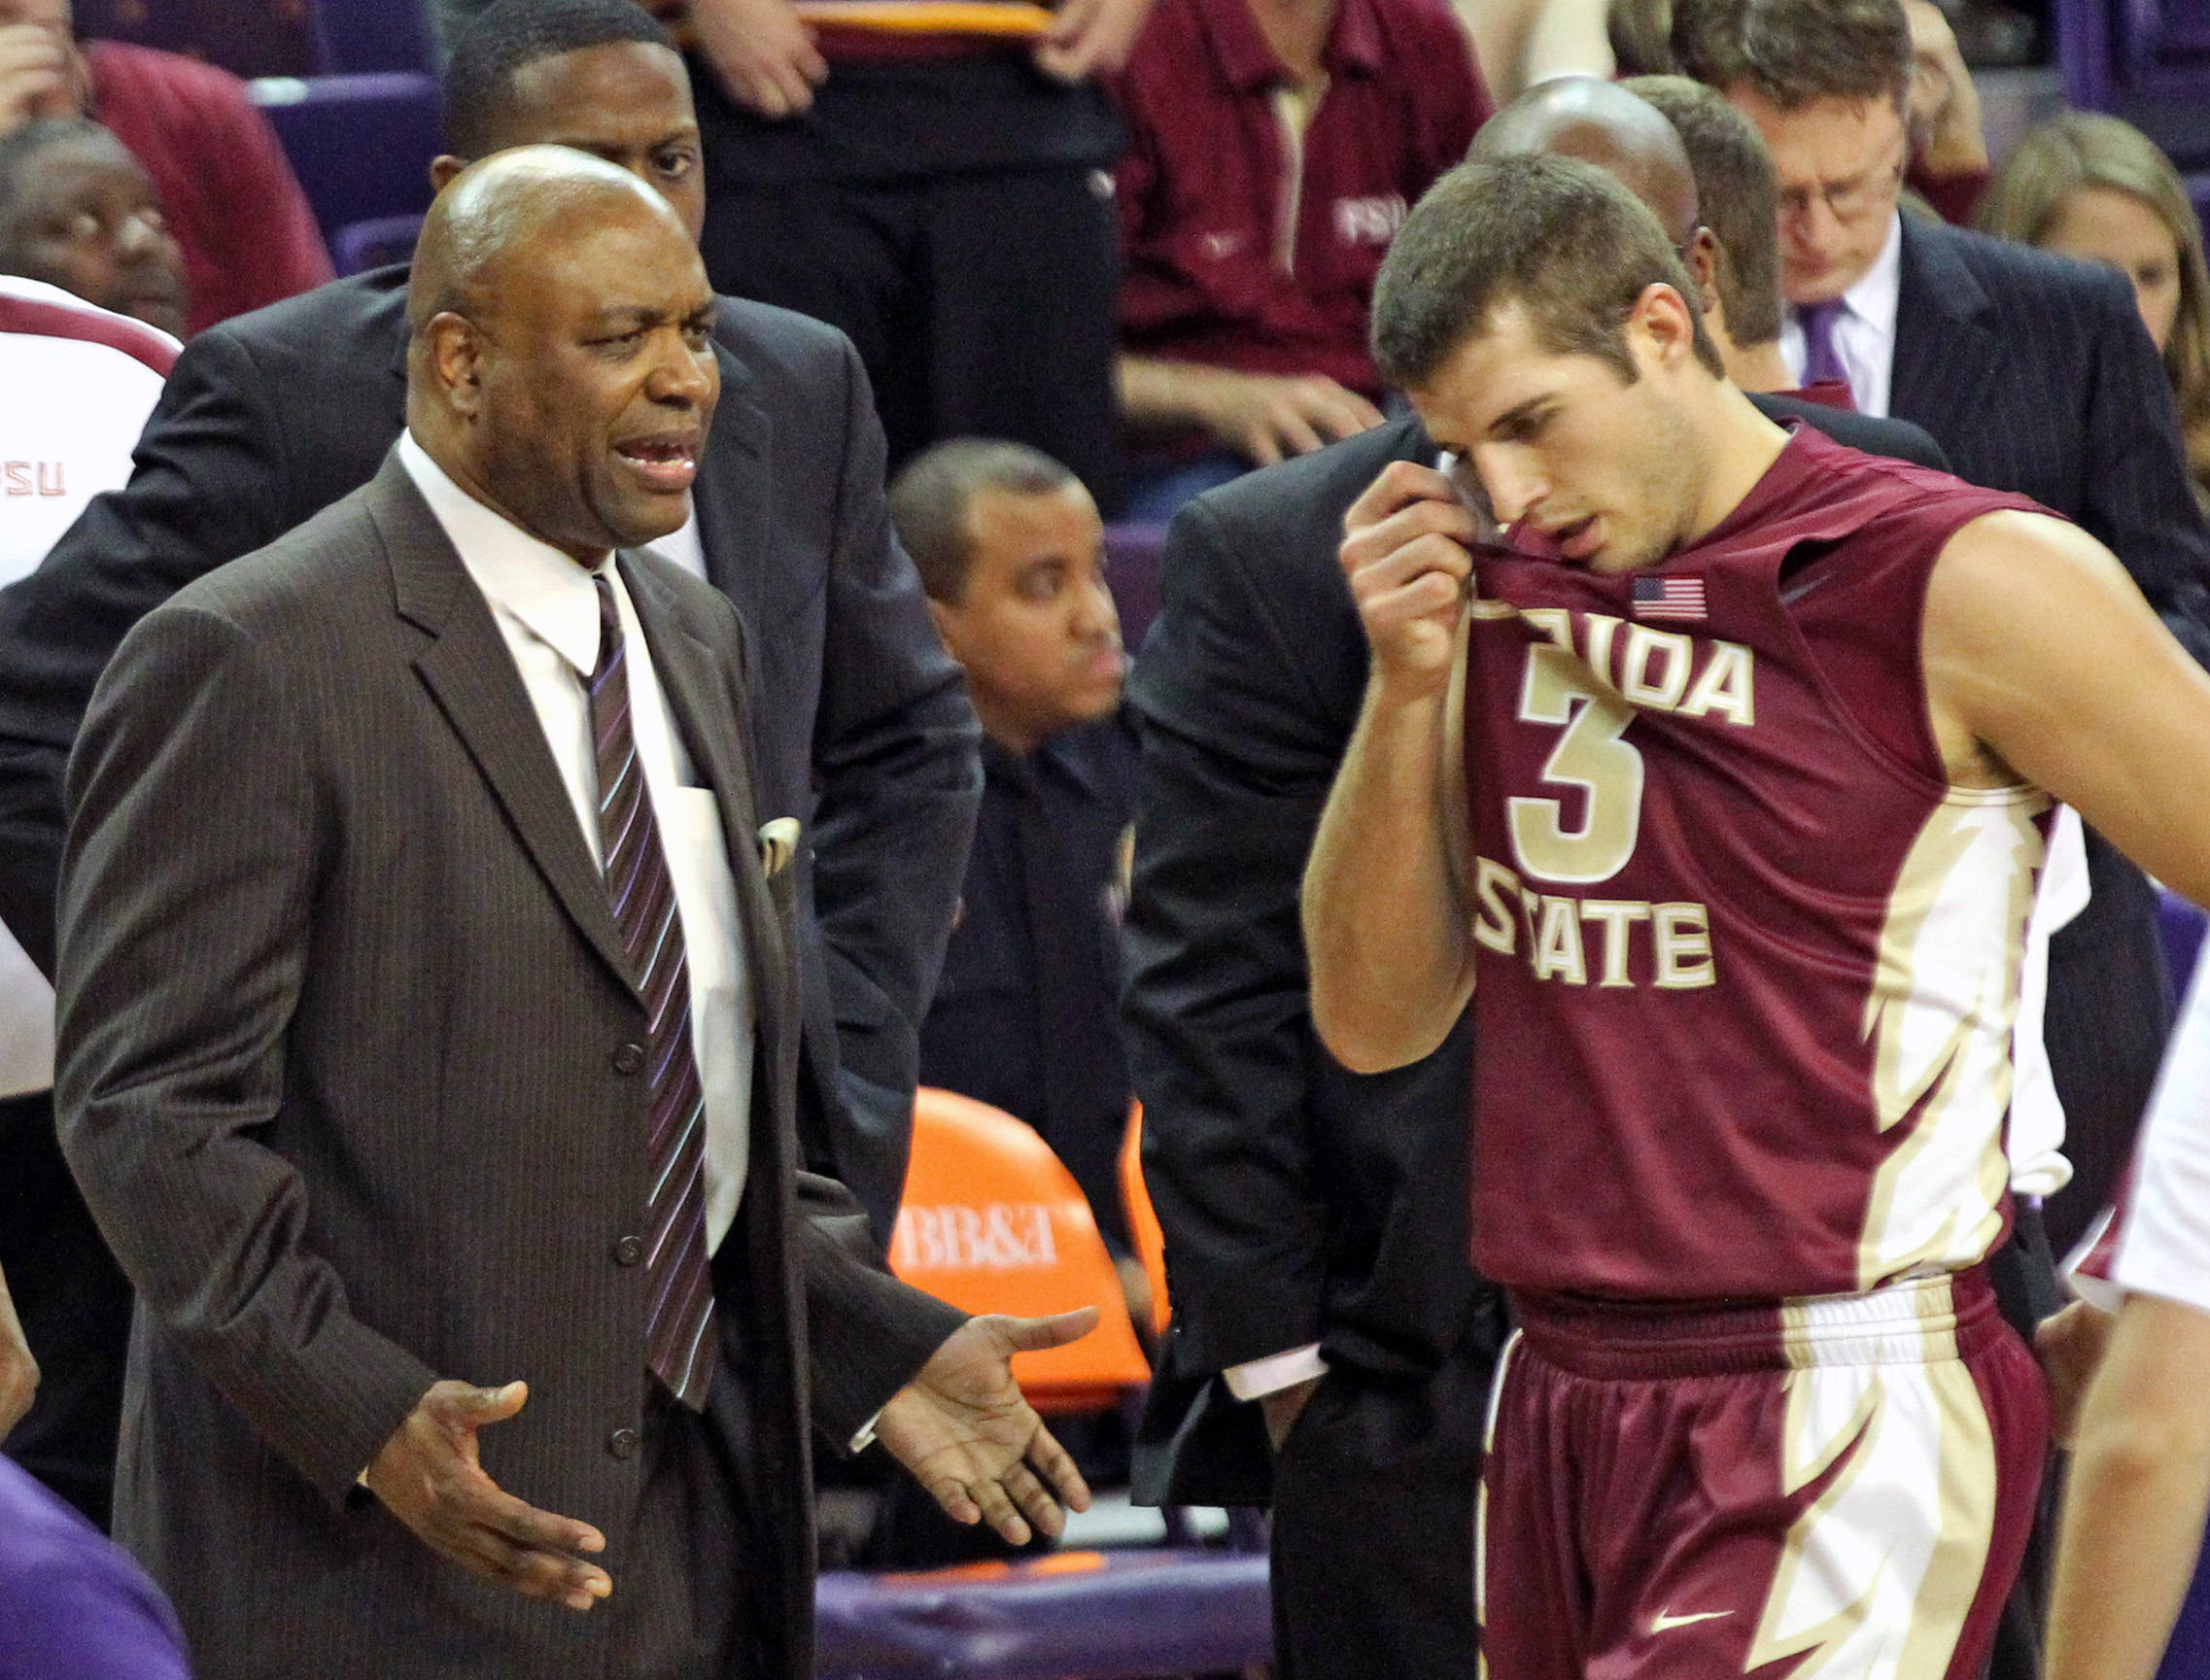 Florida State head coach Leonard Hamilton, left, talks to Luke Loucks (3) as he walks to the bench after committing a foul during the second half. (AP Photo/Anderson Independent-Mail, Mark Crammer)